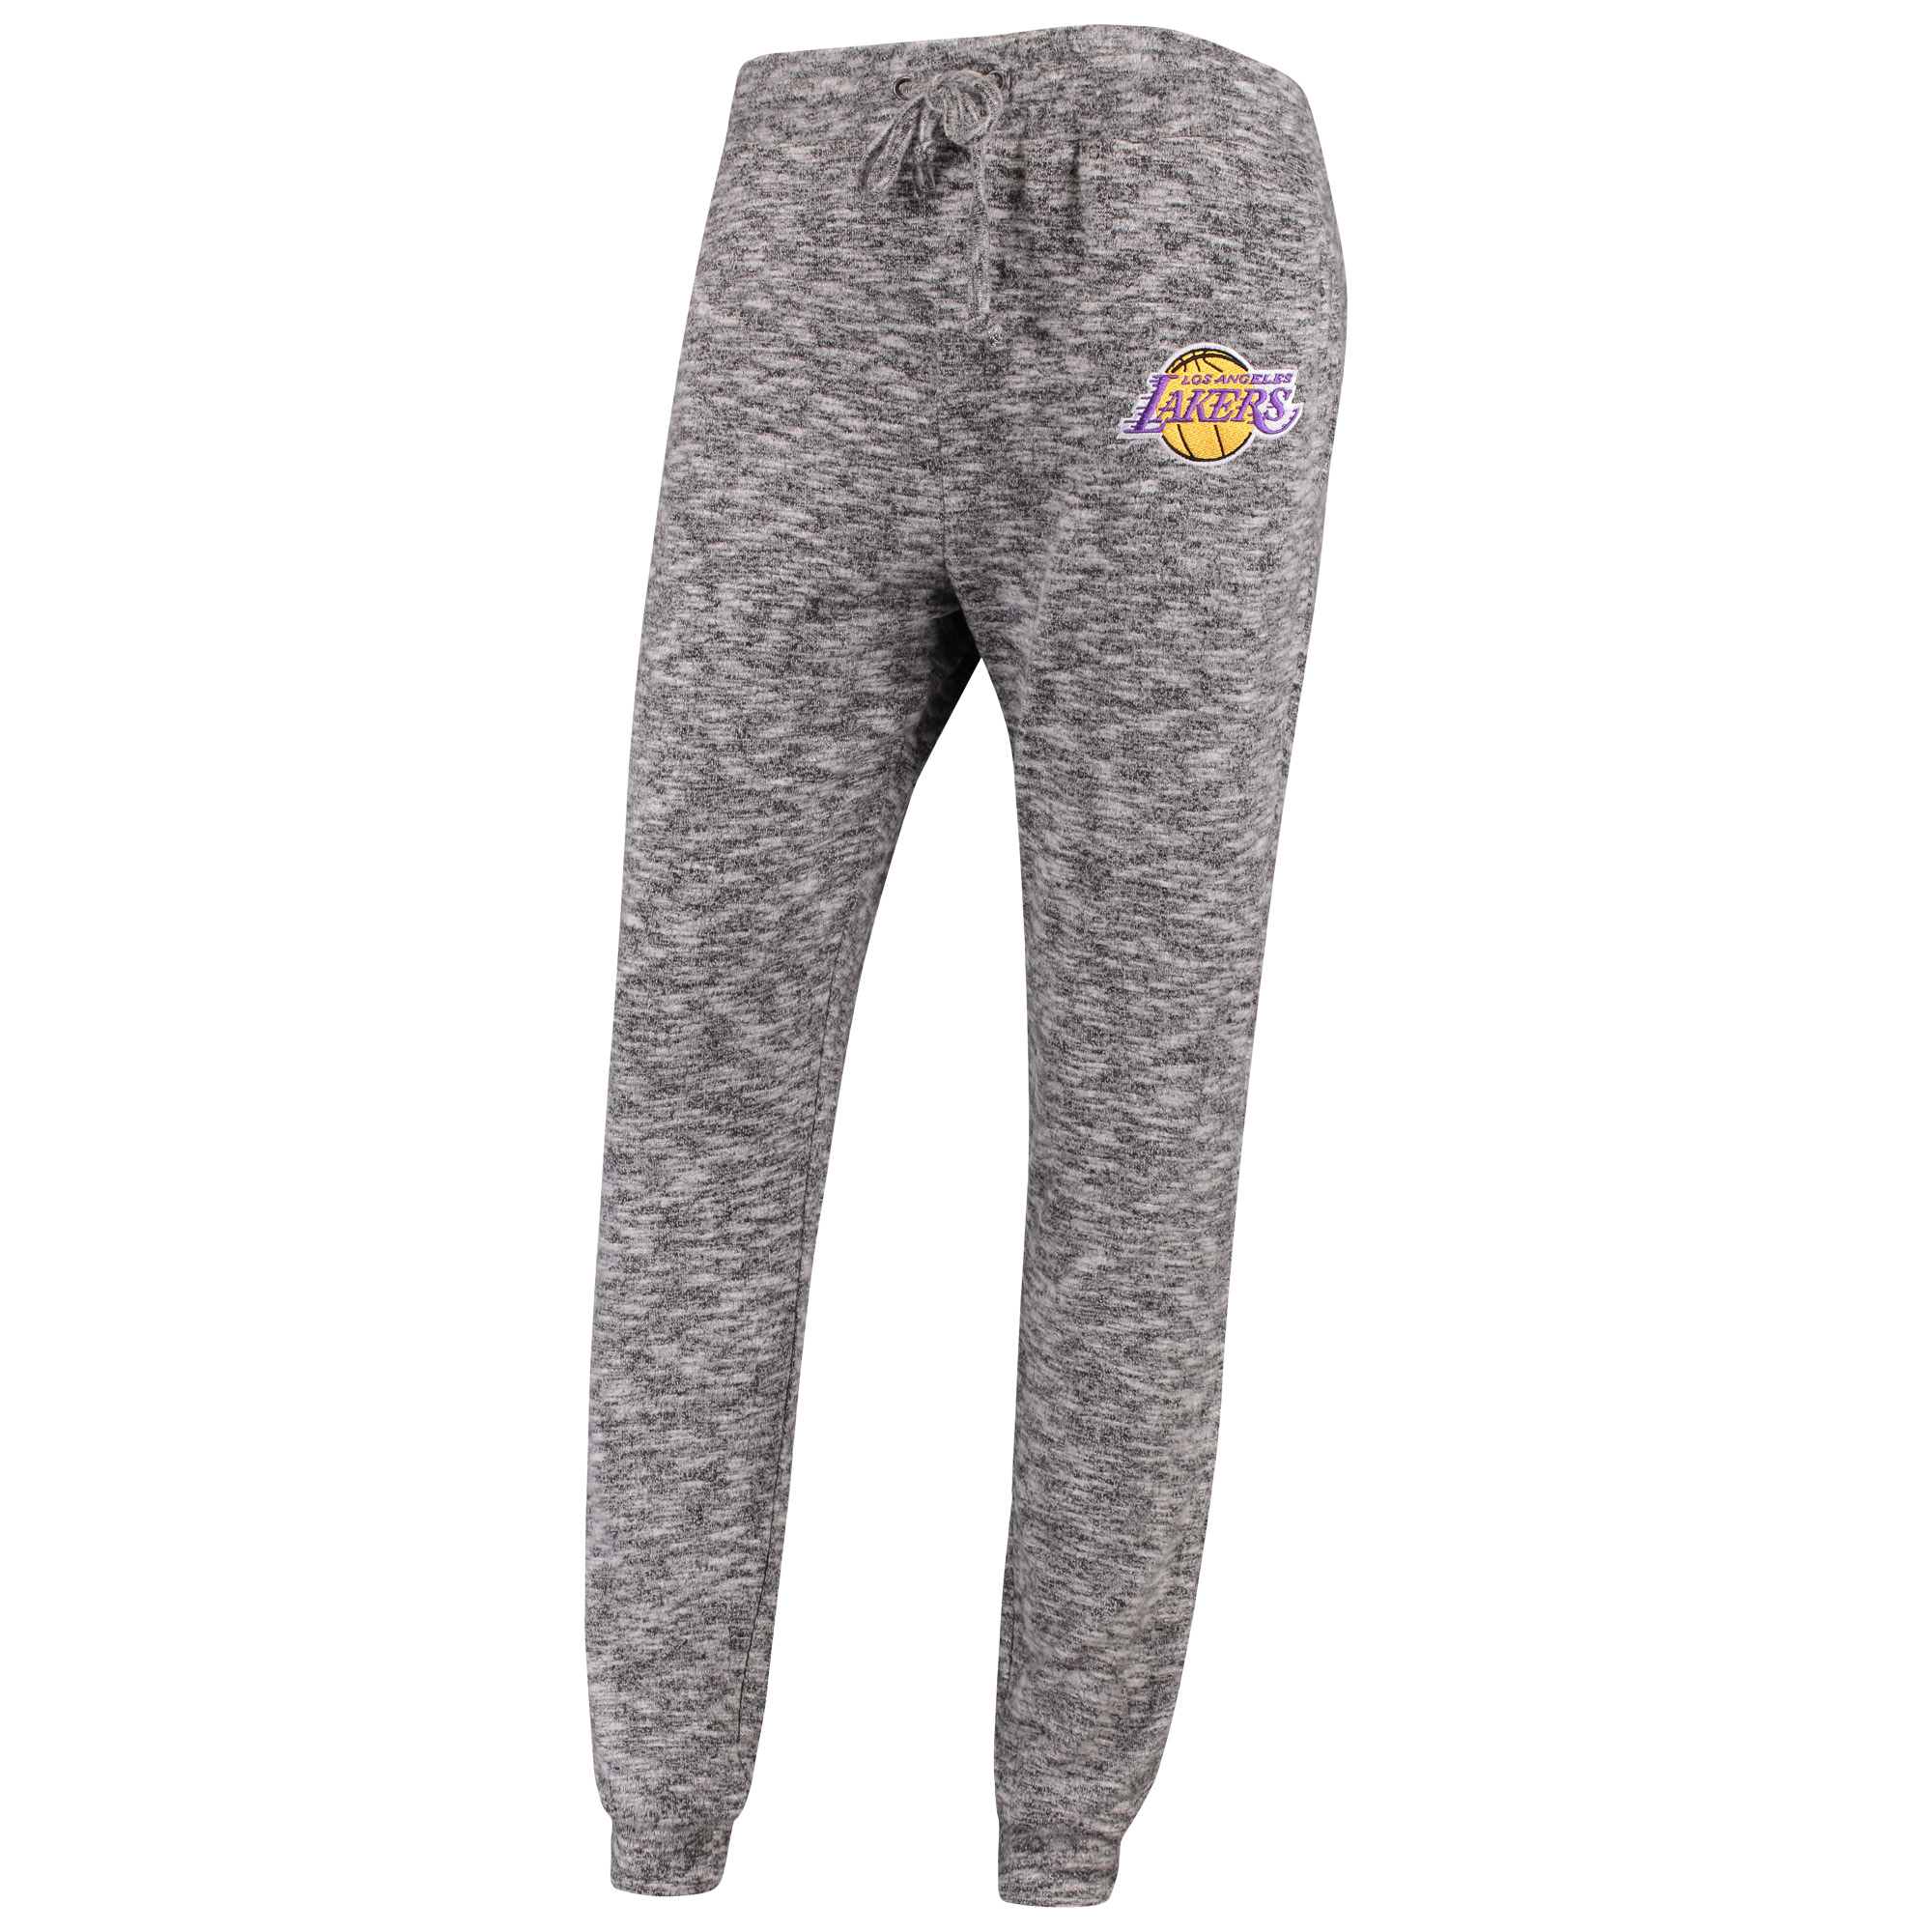 Los Angeles Lakers FISLL Women's Hacci Tri-Blend Jogger Pants - Heather Gray